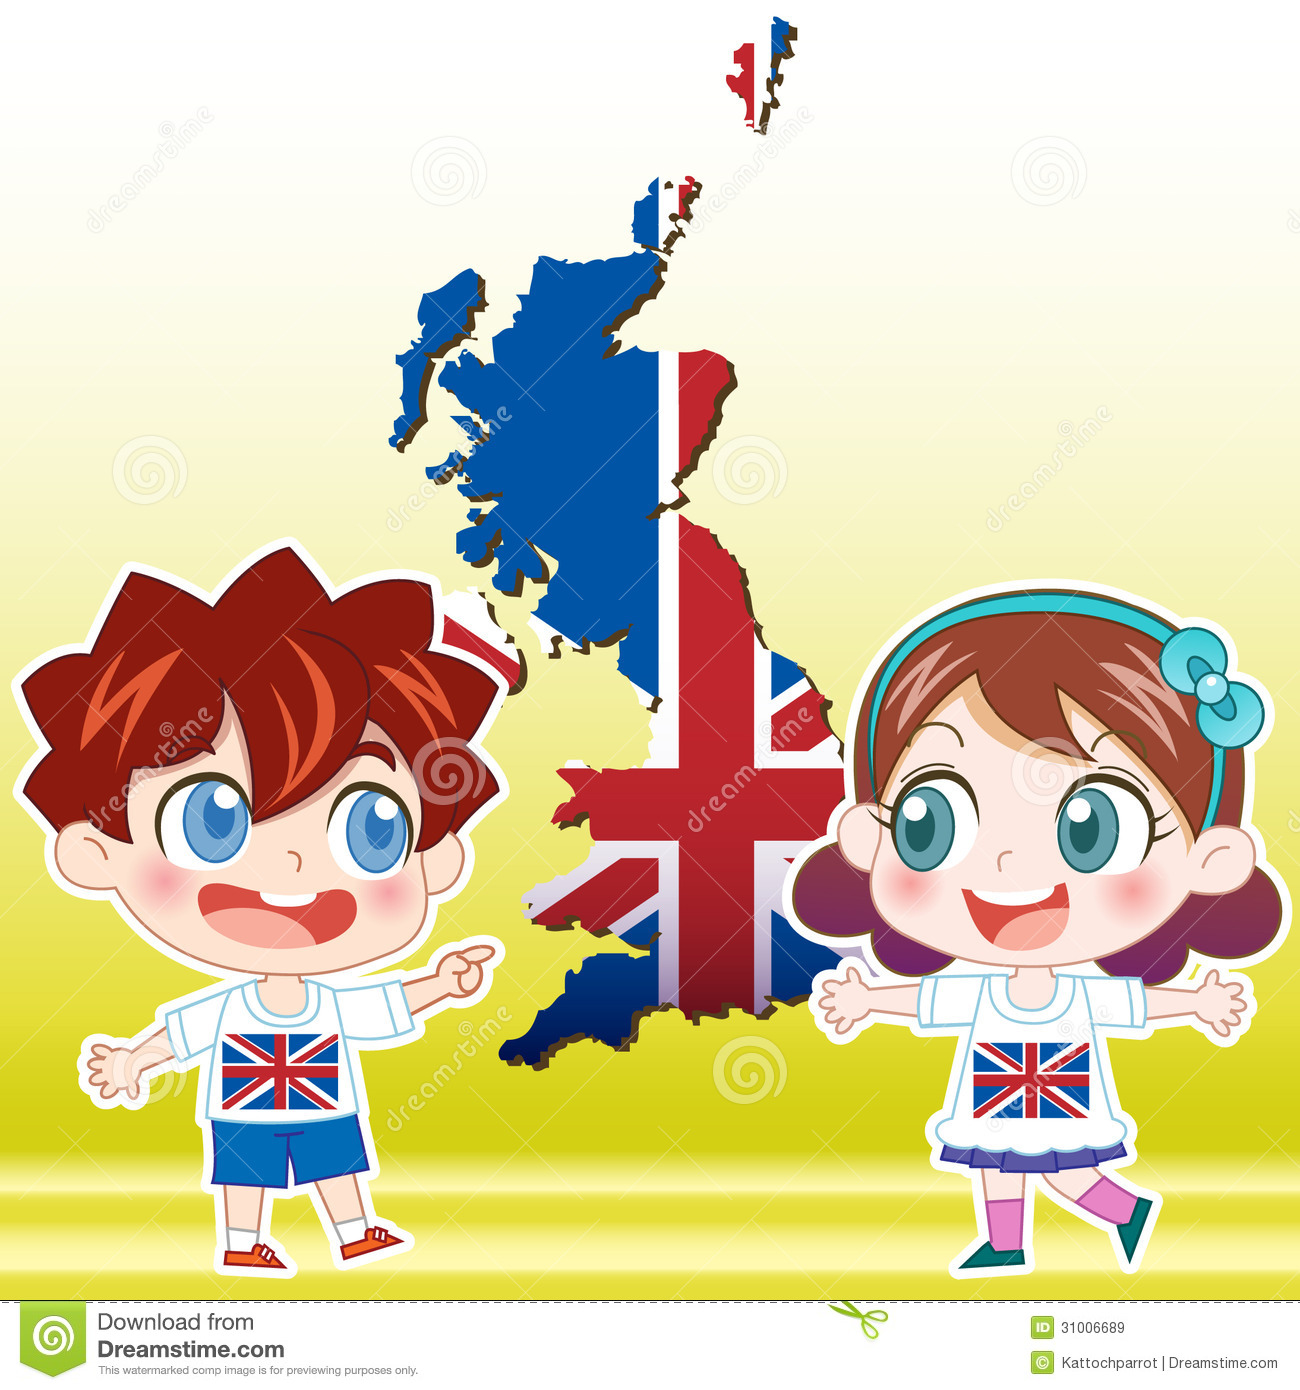 Map Of England For Kids.England Kids Stock Vector Illustration Of Unique Clothes 31006689